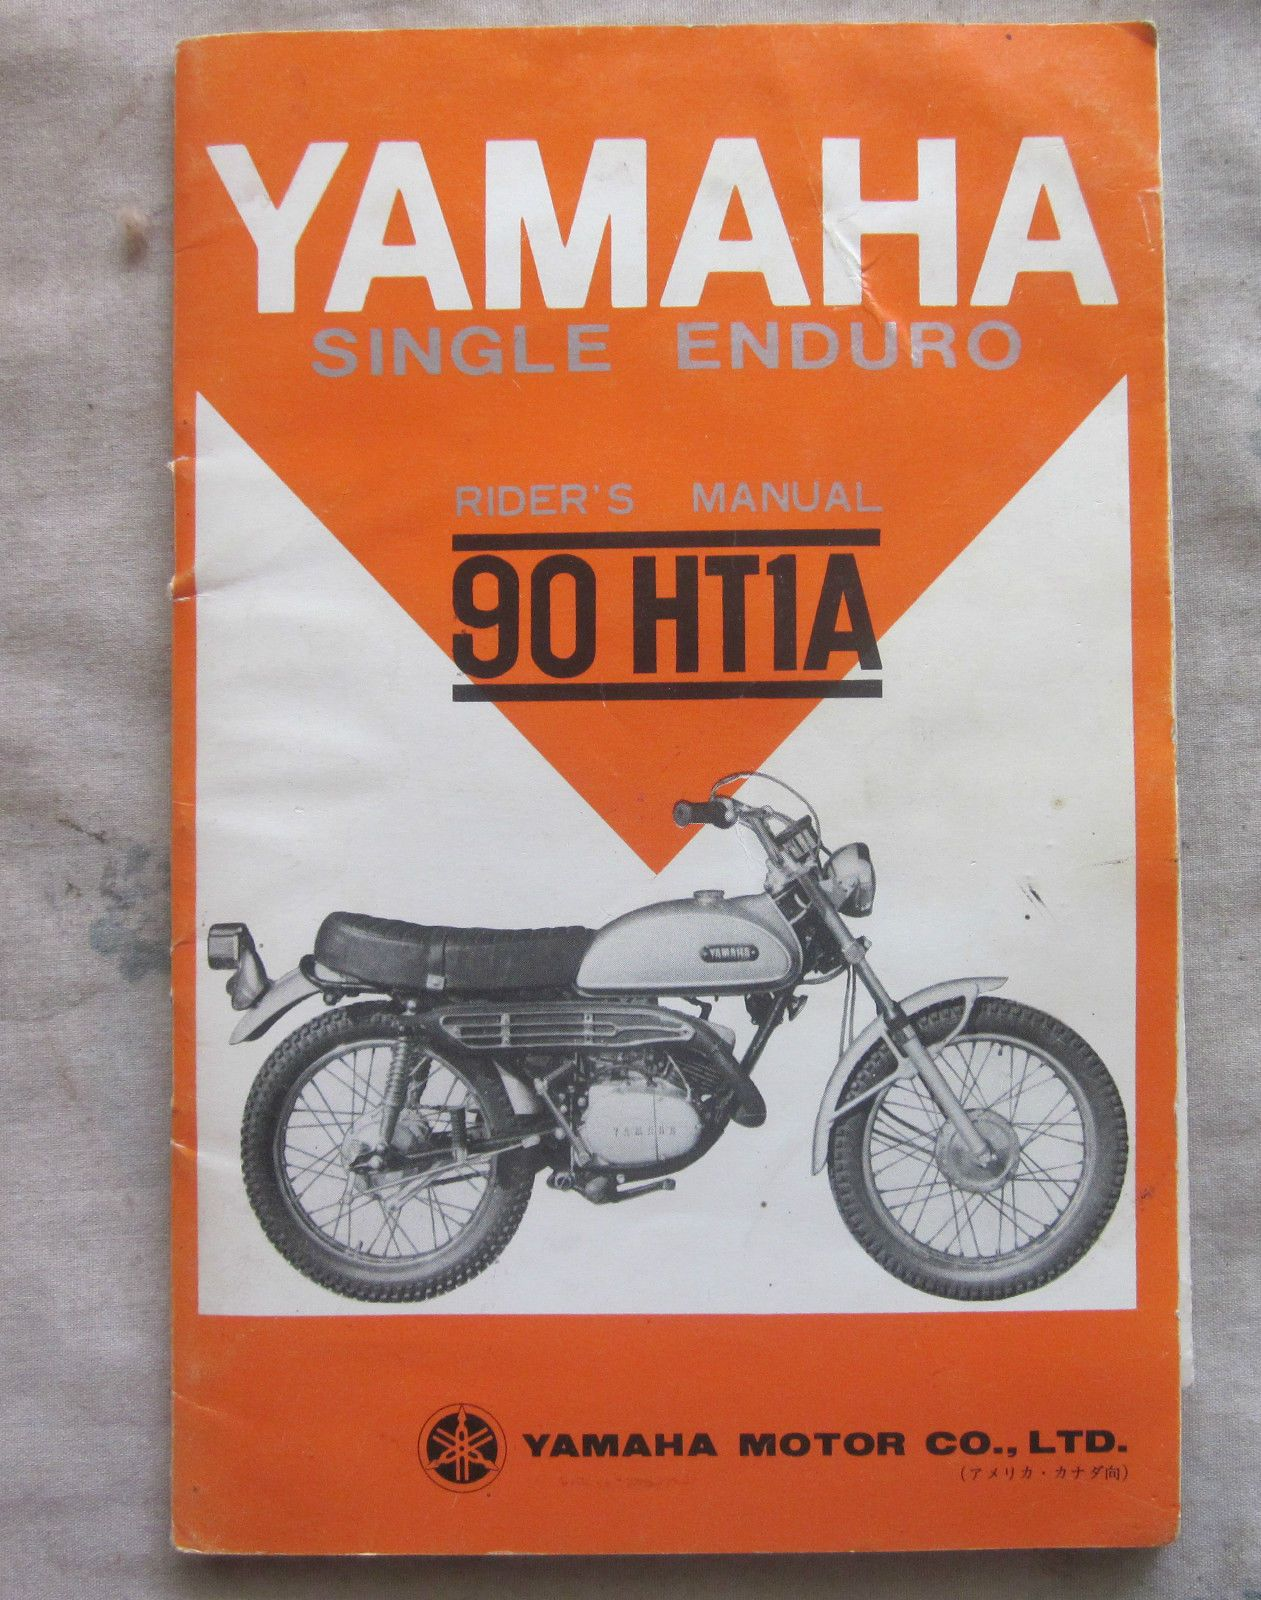 Motorbikes · User Guide · Choppers · Vintage Yamaha Single Enduro 90 HT1A  Riders Manual | eBay Manual, Ebay, Vintage,